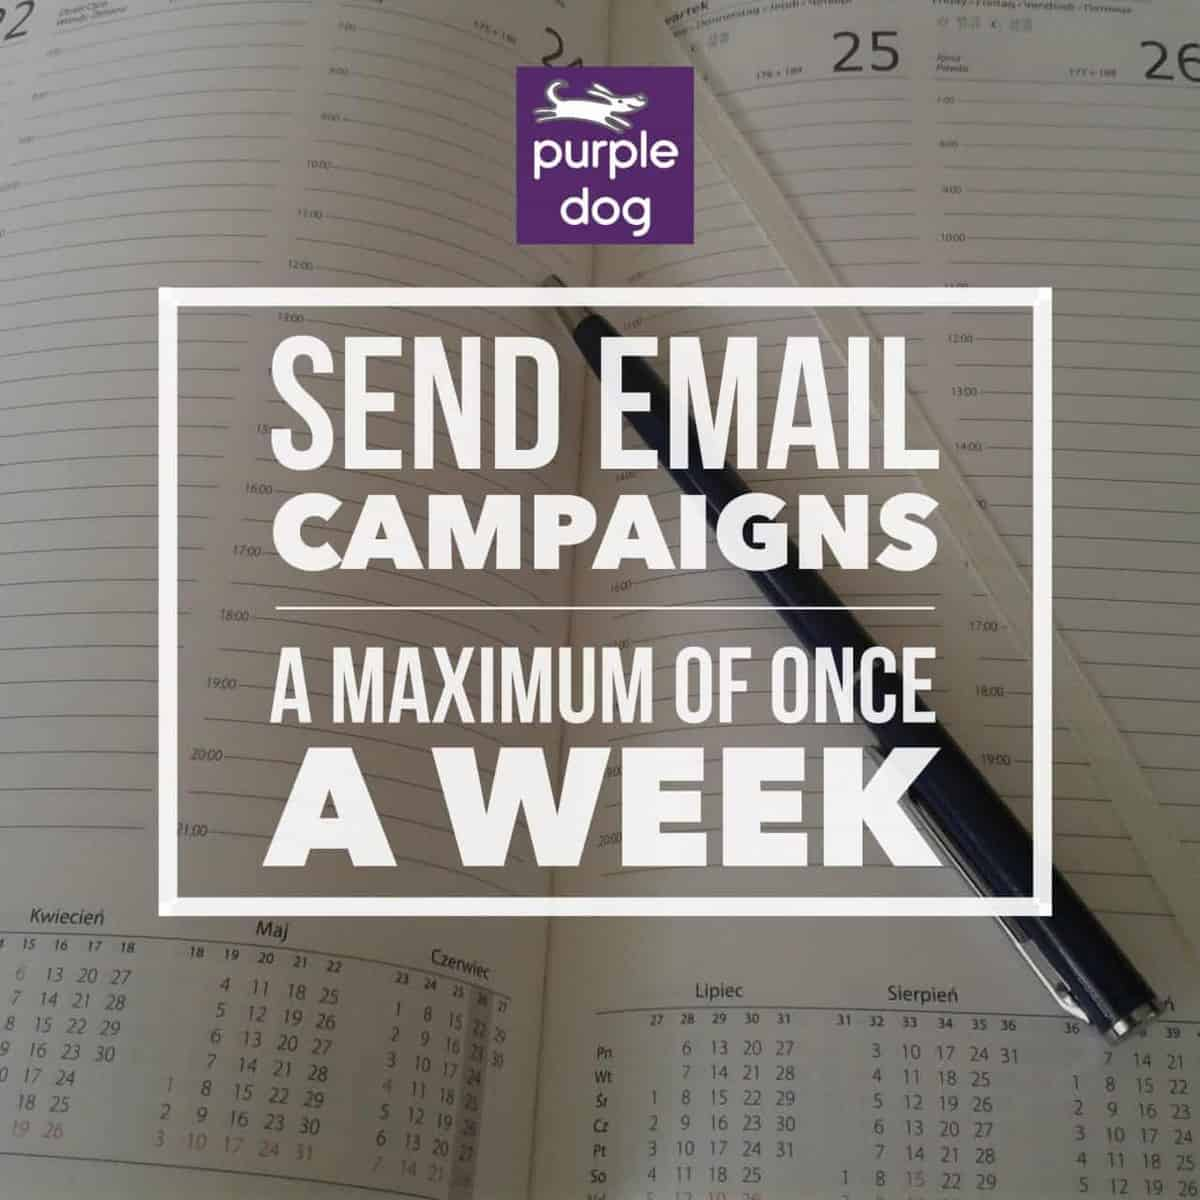 send email campaigns no more than once a week